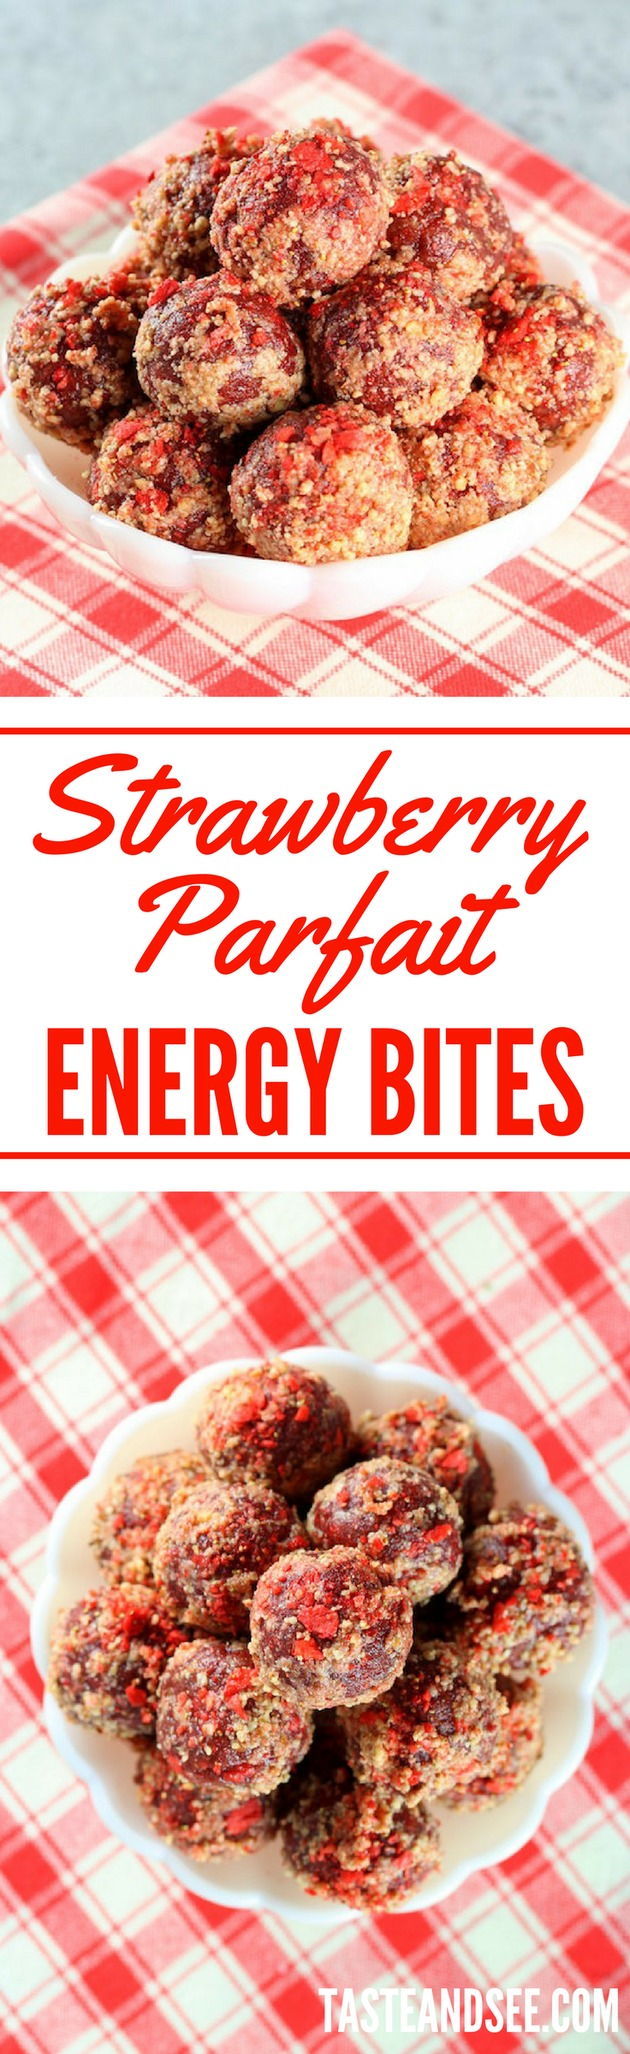 IN-POST-Strawberry-Parfait-Energy-Bites